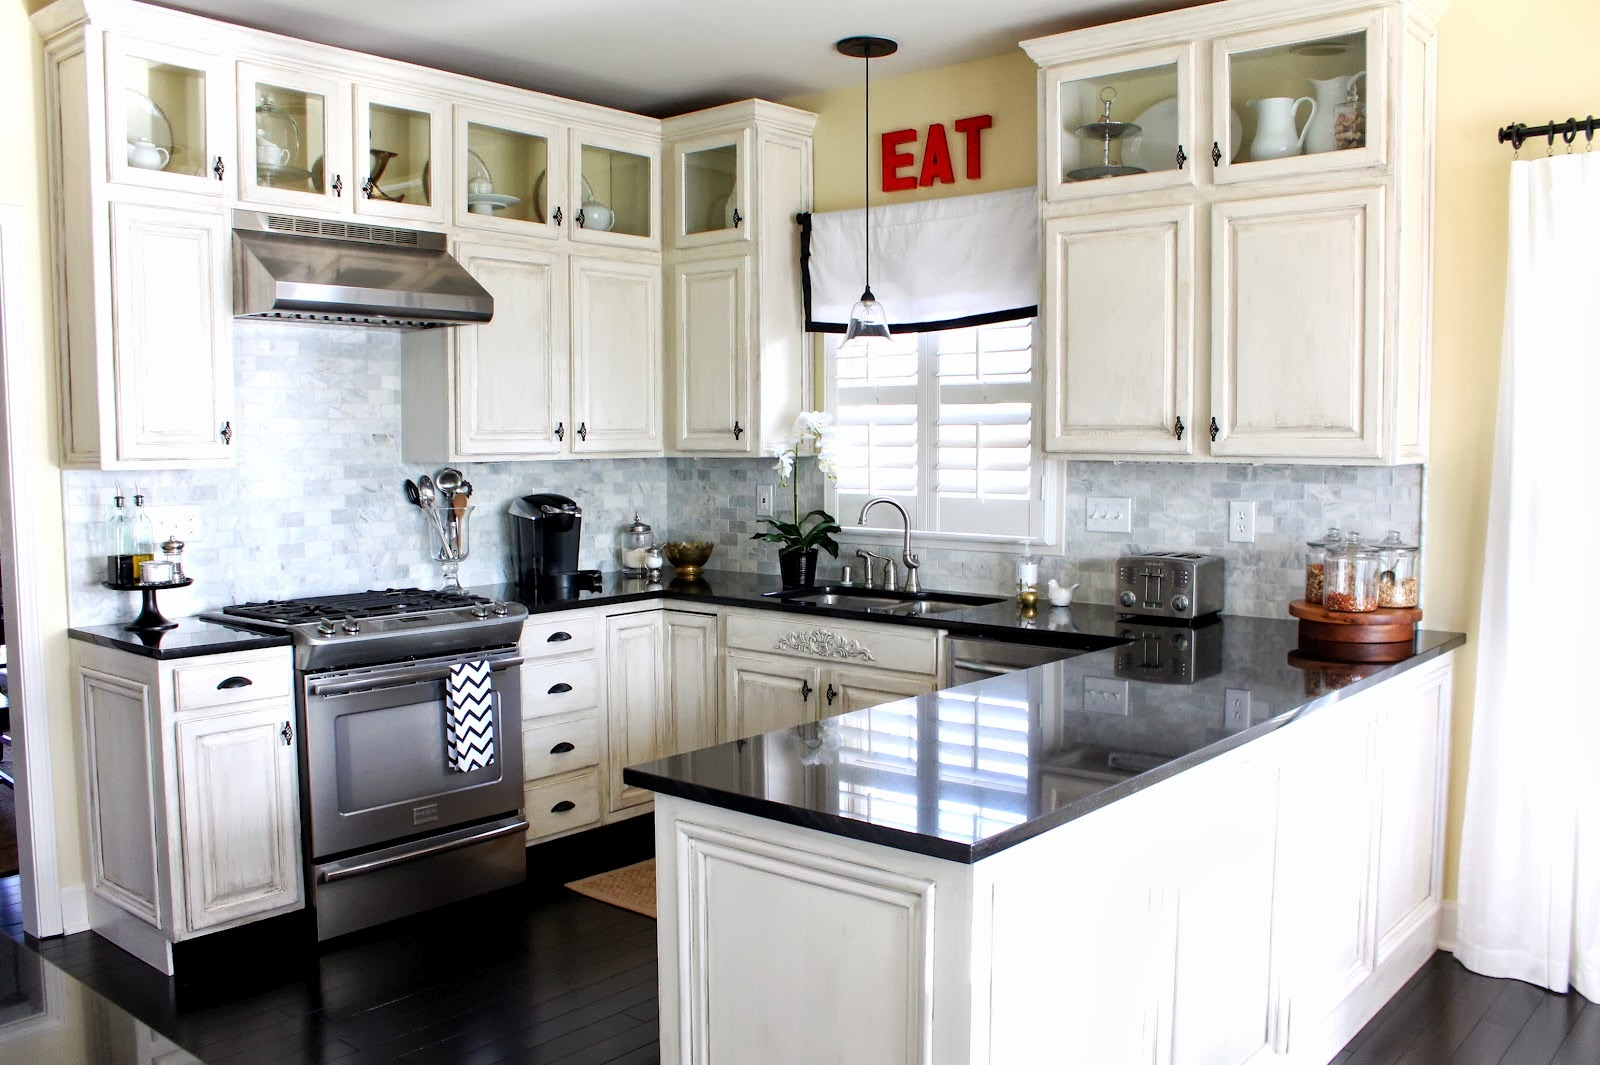 White kitchen cabinets be equipped unfinished kitchen cabinets be equipped tall kitchen cabinets